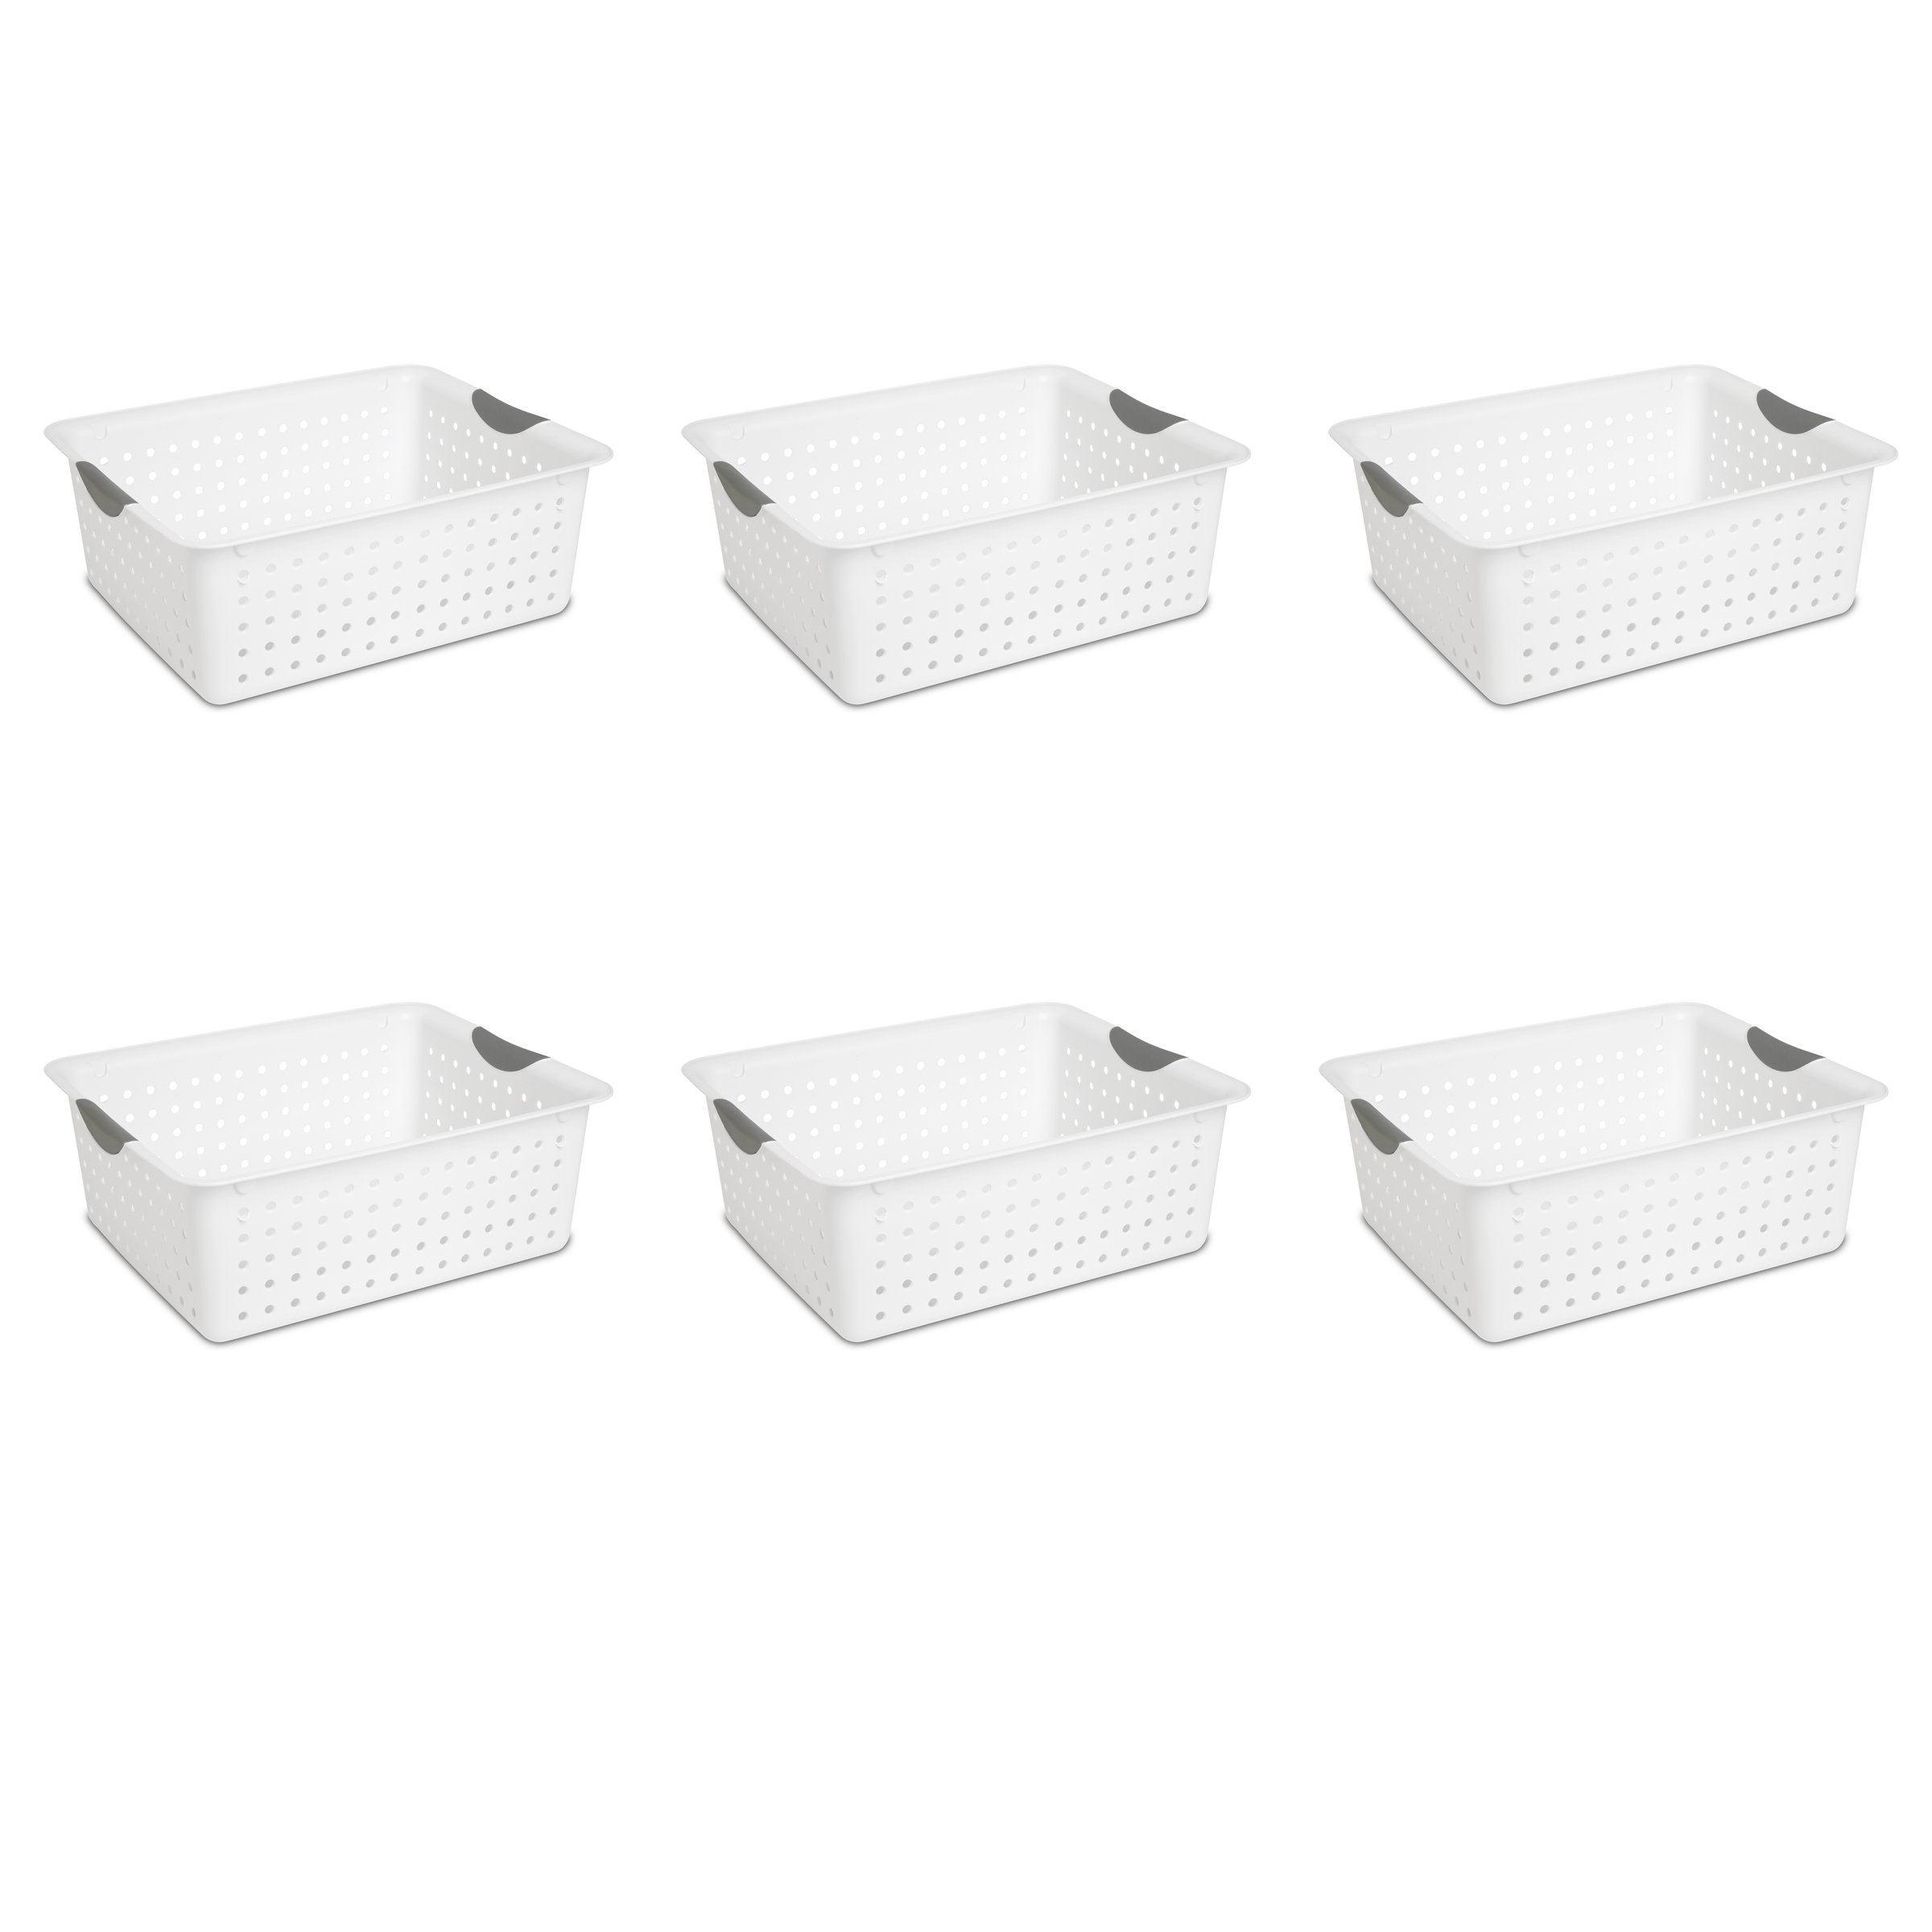 Sterilite 16268006 Large Ultra Basket, White Basket w/ Titanium Inserts, 6-Pack by STERILITE